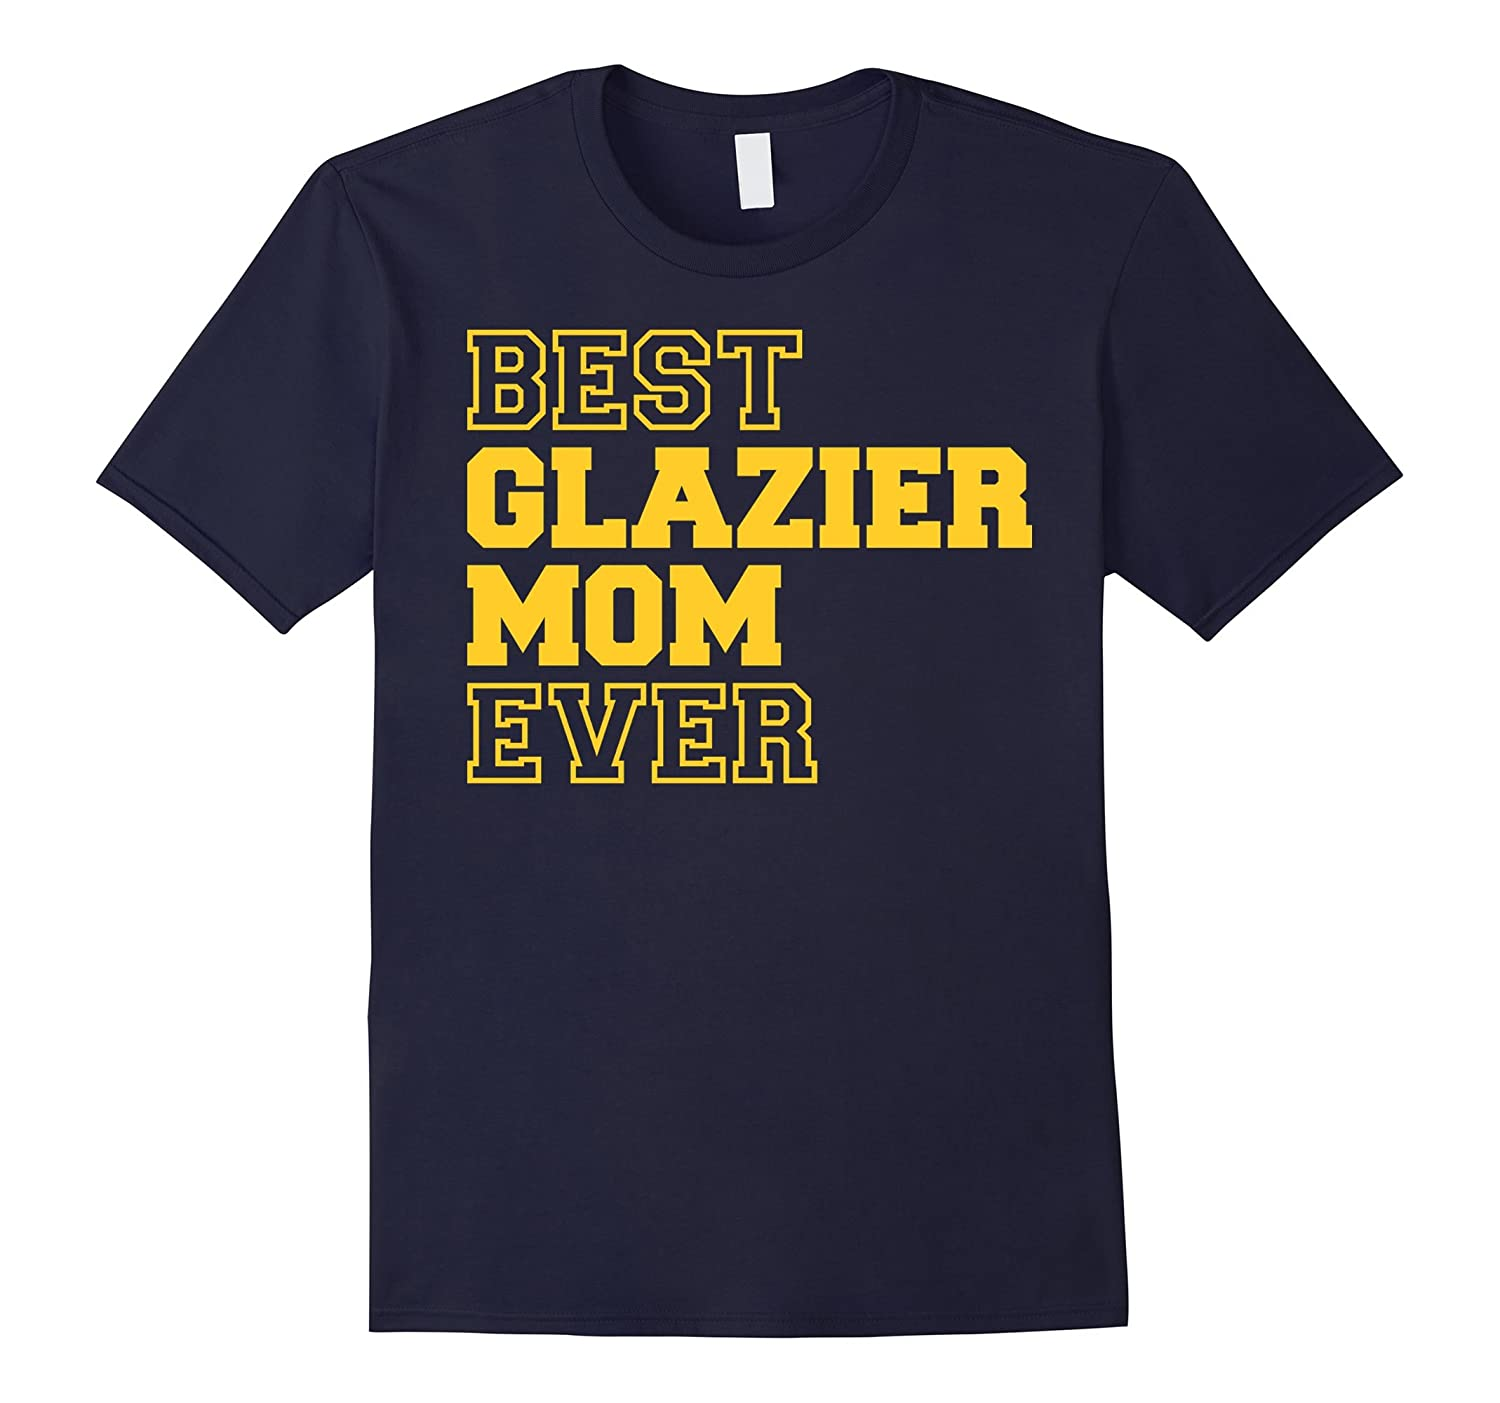 Best Glazier Mom Ever T-Shirt-TD